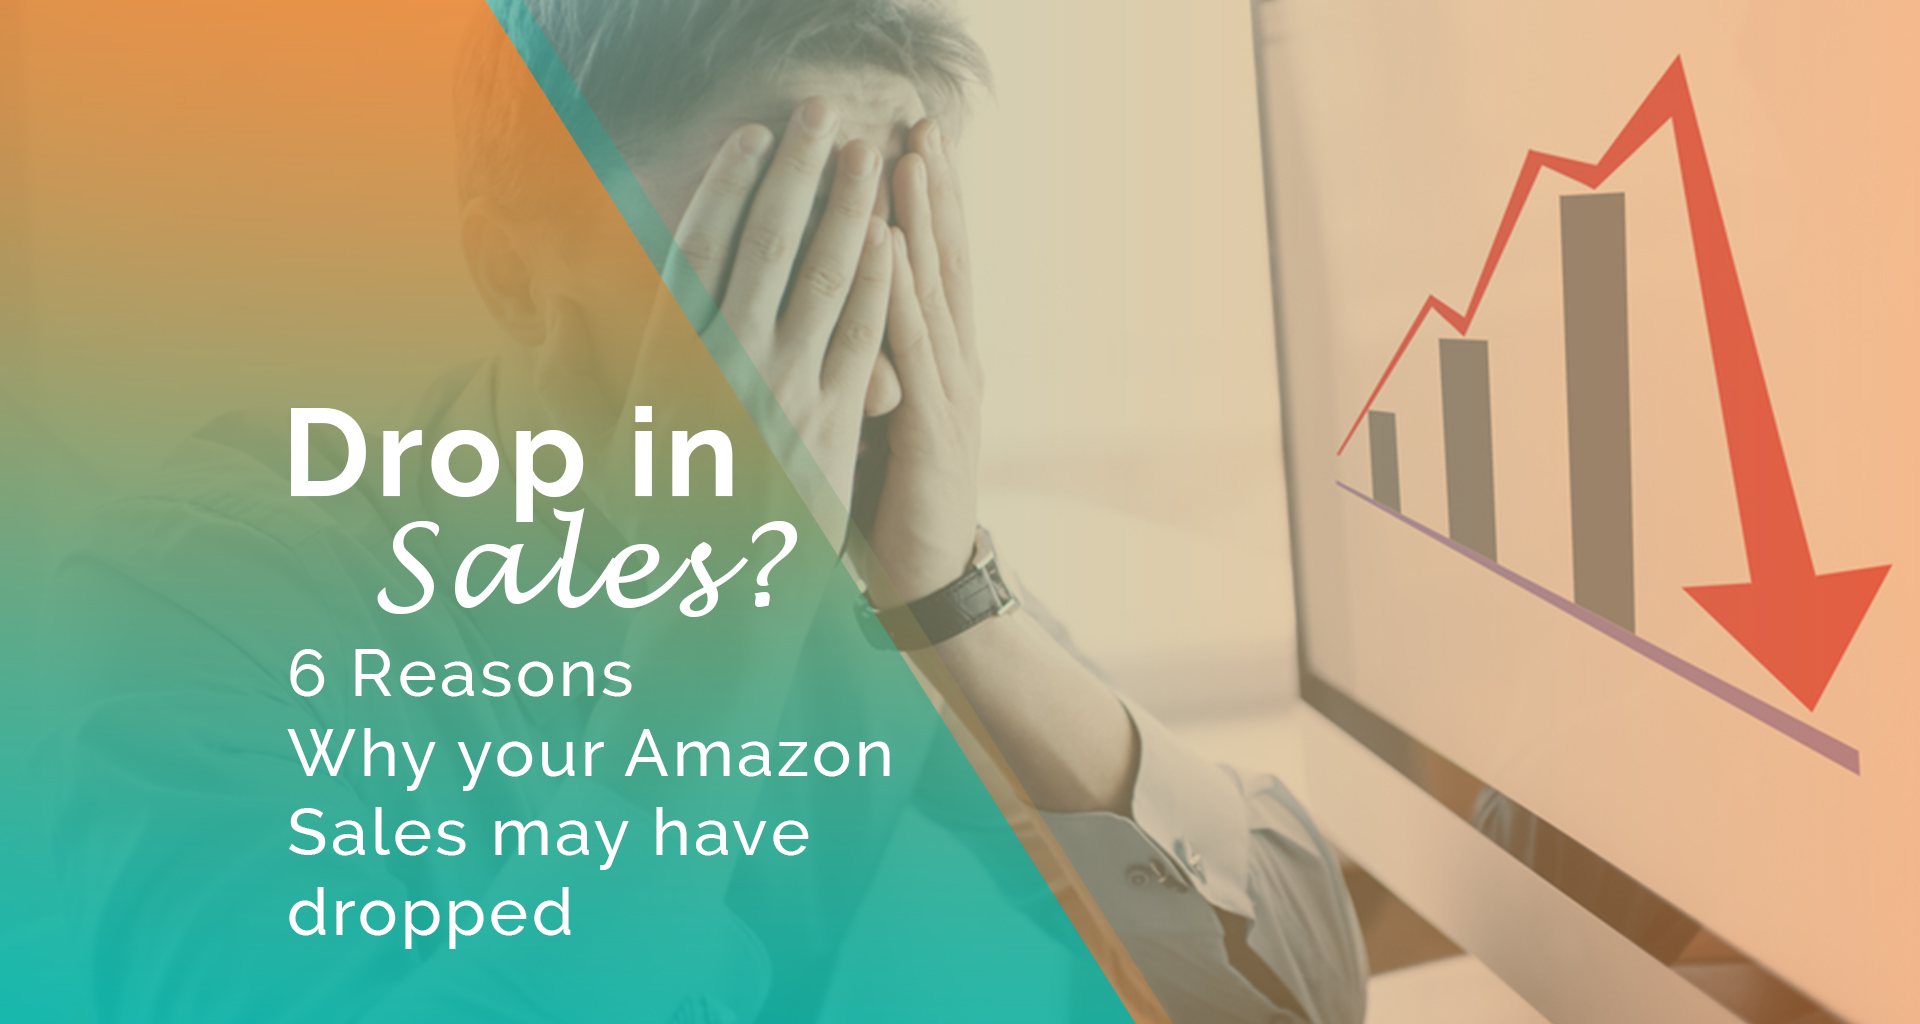 6 Reasons Why Your Amazon Sales May Have Dropped